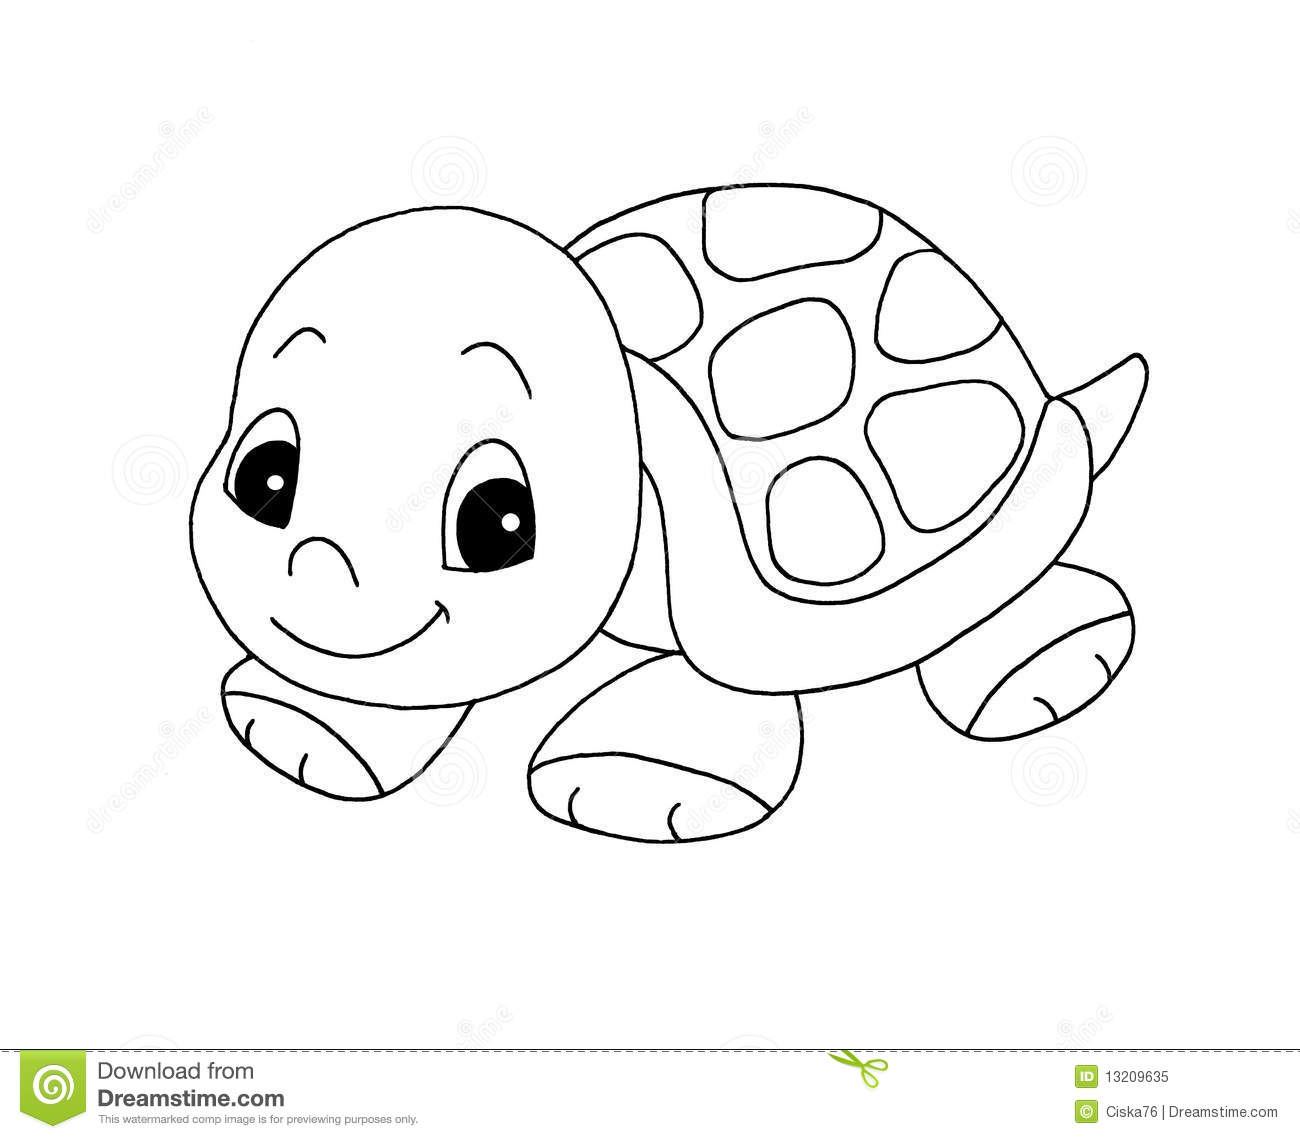 Turtle Clip Art Black and White